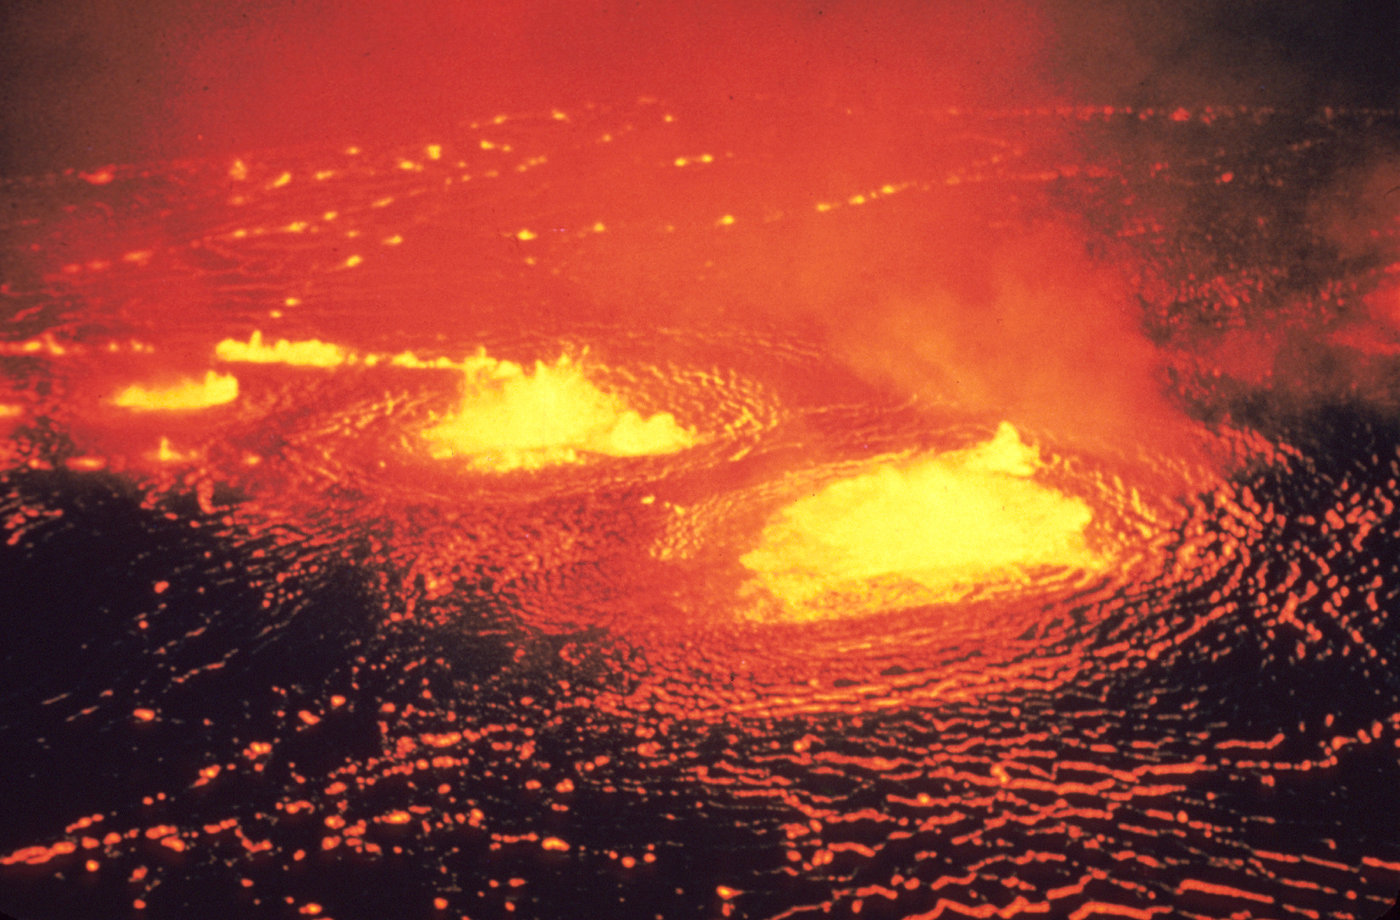 Recent models of the very early Earth showed that the planet could have been cooling rapidly by heat-pipe volcanism (just like Jupiter's moon Io). Image shows the May 1954 eruption of Kilauea Volcano in Hawaii. Credit: J.P. Eaton, May 31, 1954 [Public domain], via Wikicommons.